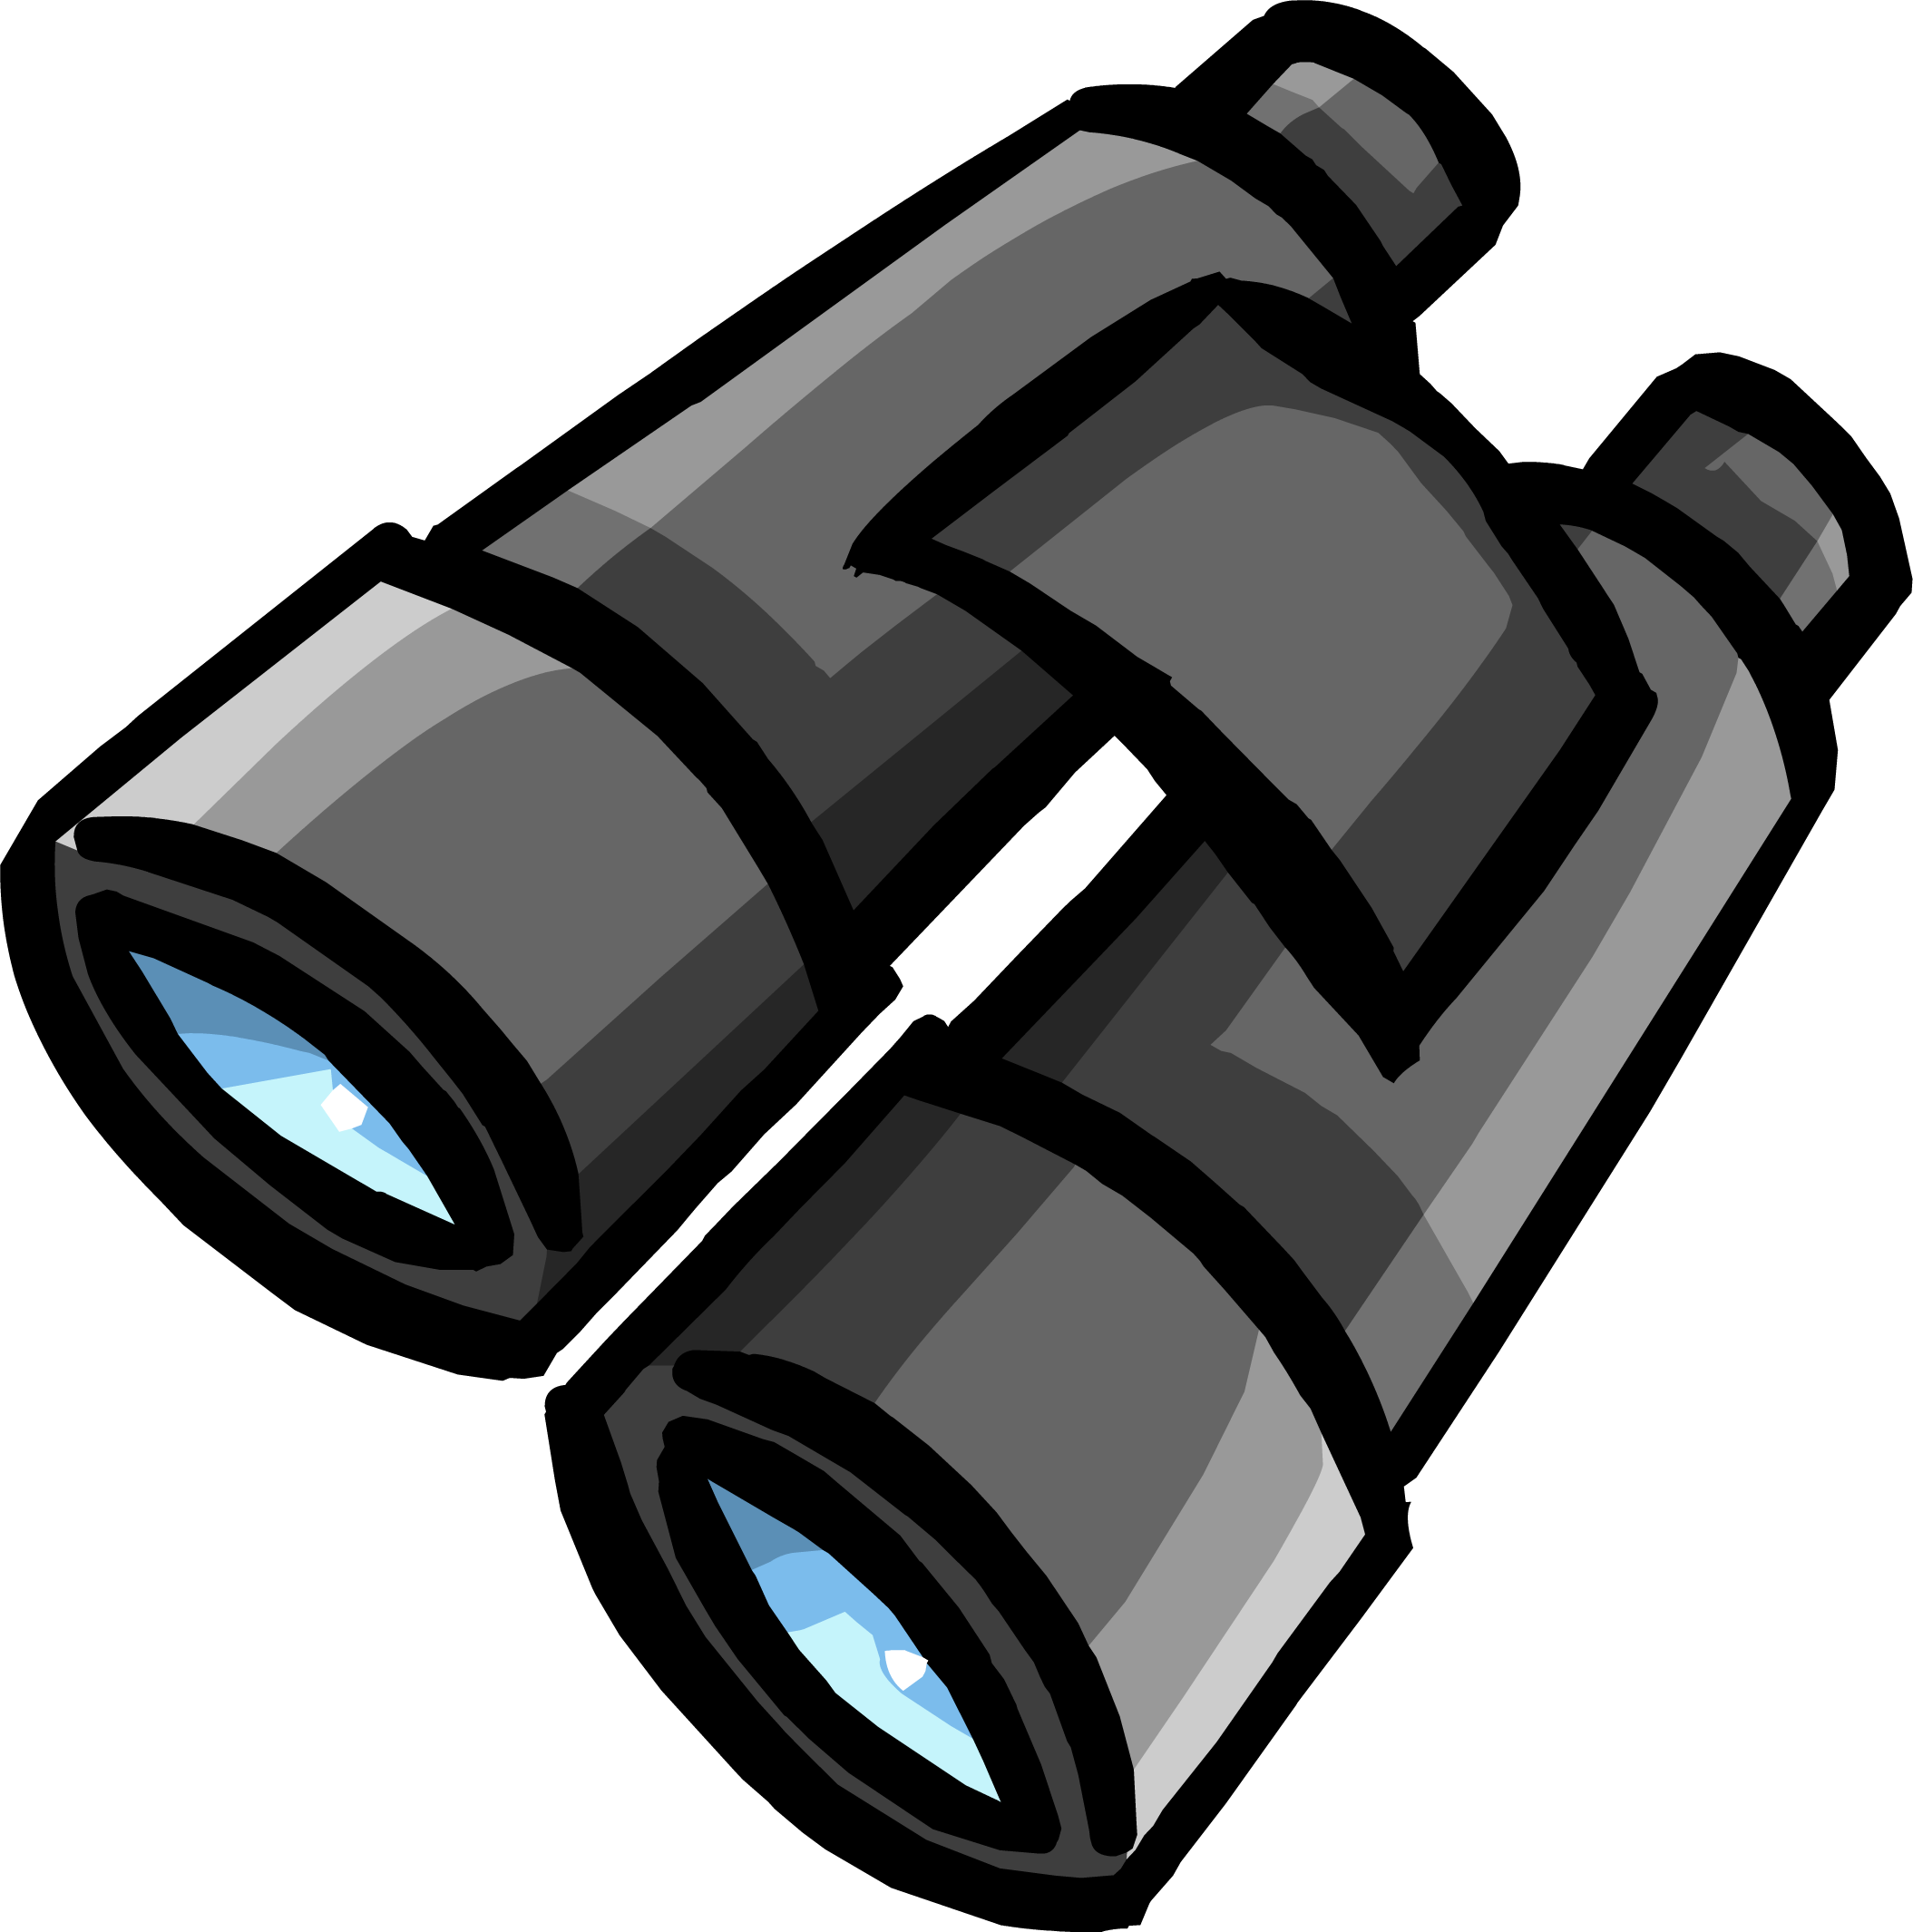 vector royalty free stock Free binoculars cliparts download. Lens clipart binocular.